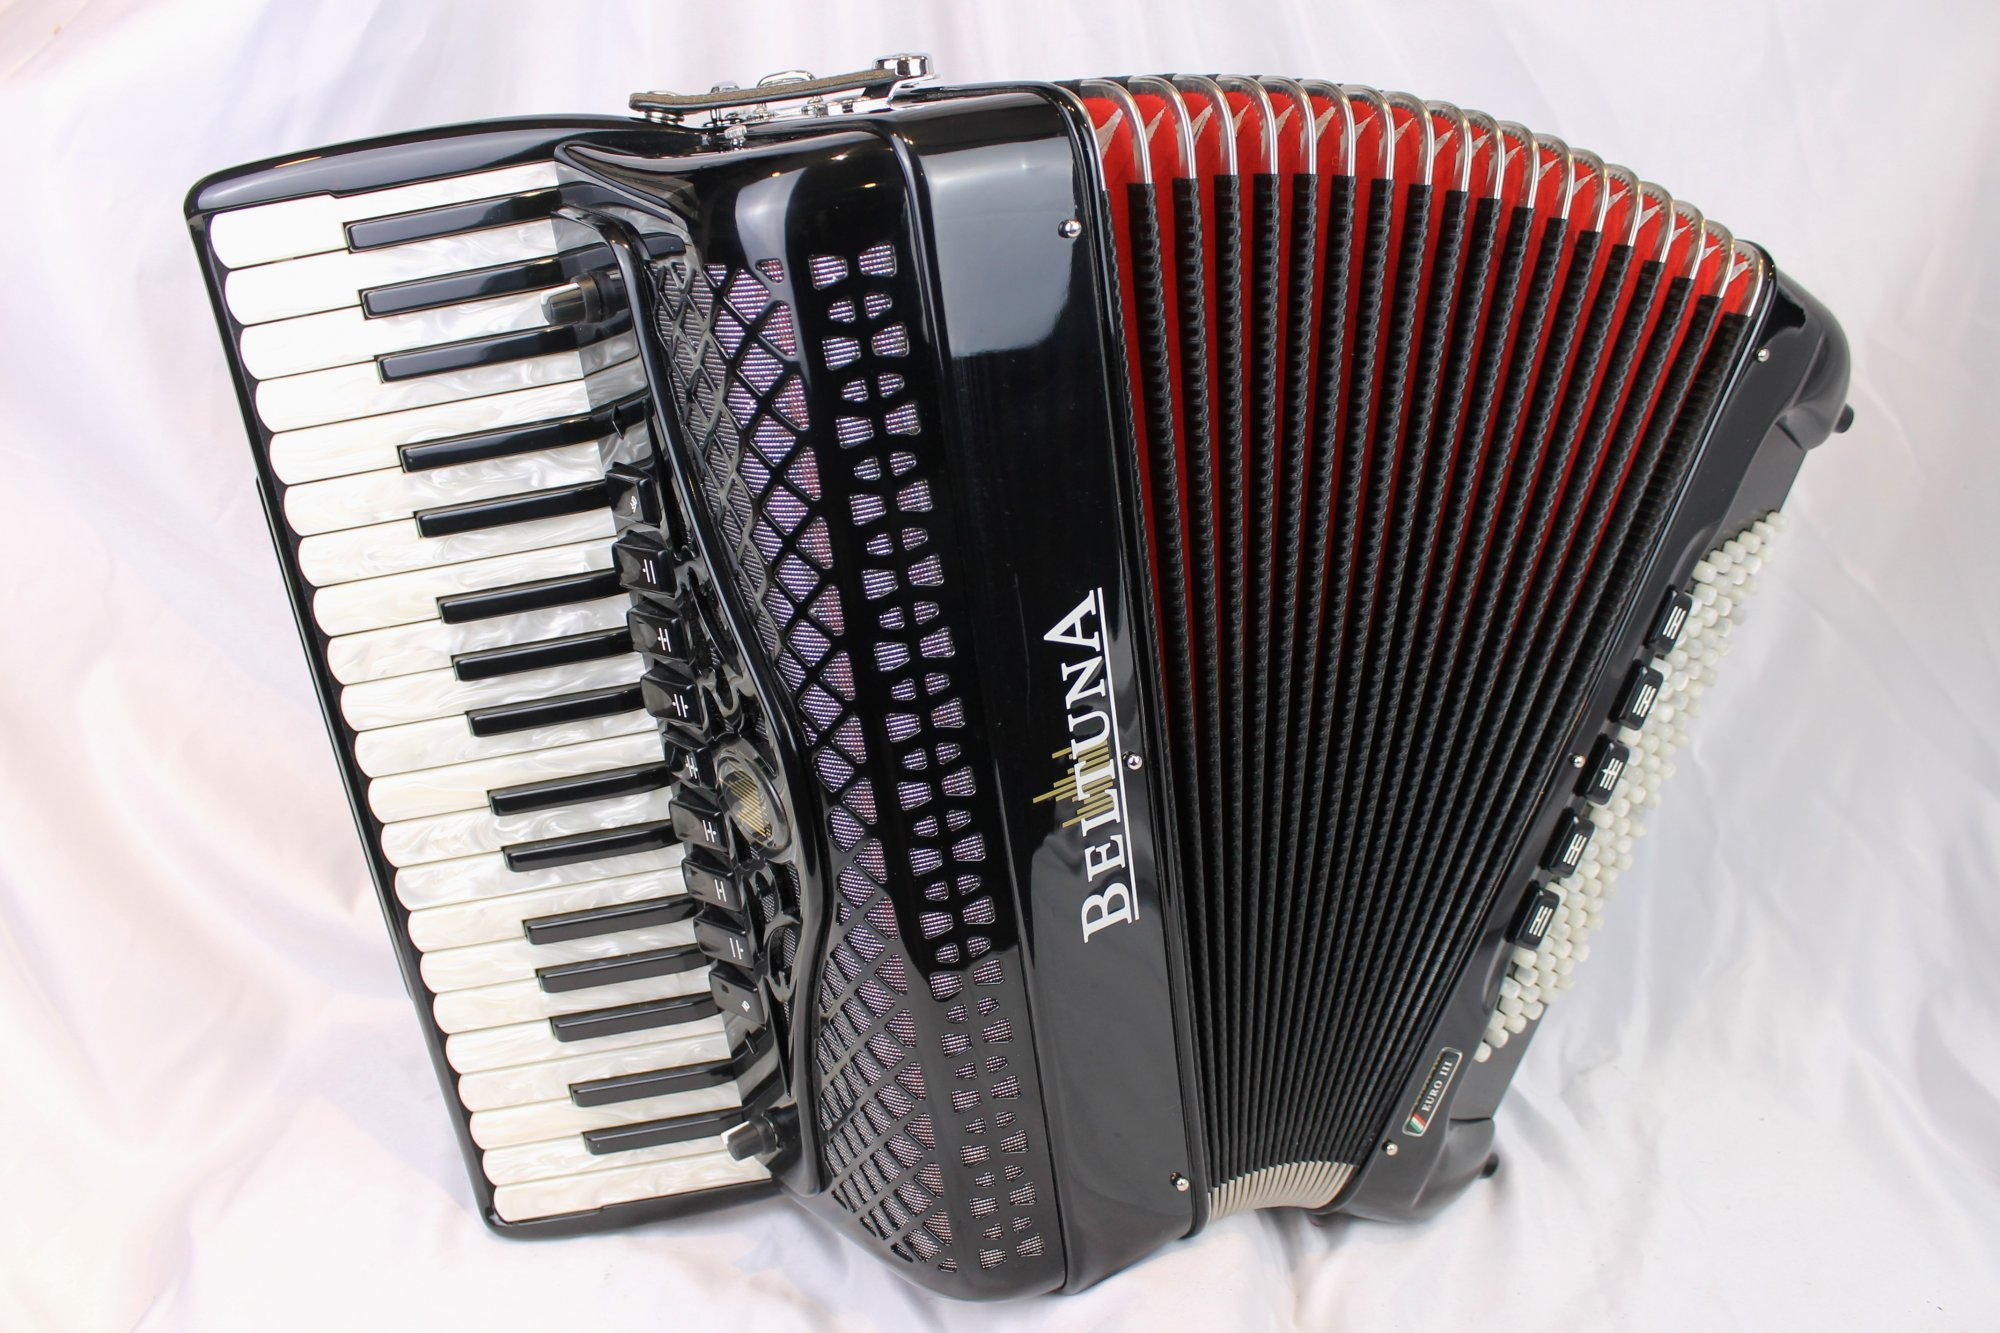 5014 - Like New Black Beltuna Euro III Piano Accordion LMH 37 96